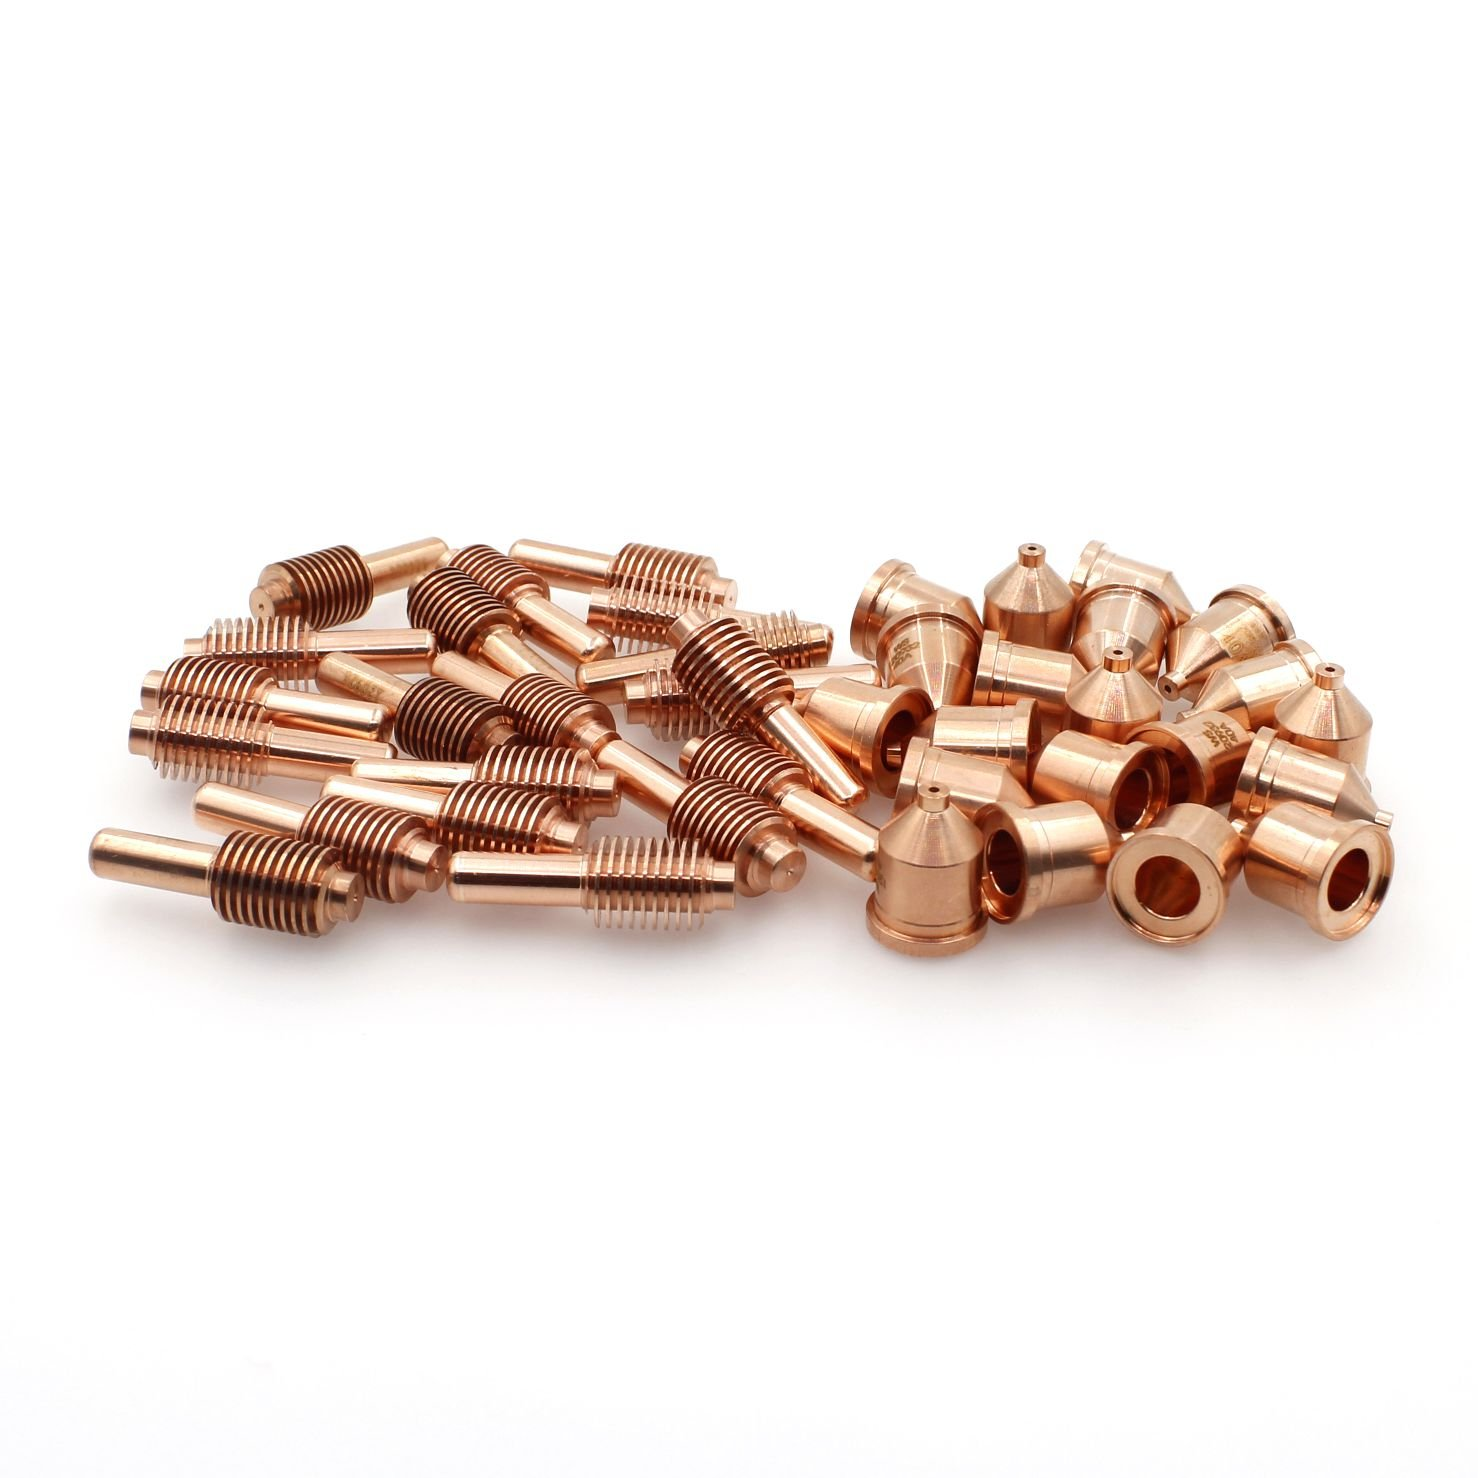 120926 Electrode /& 120931 Nozzle 60A Tip for Plasma Cutting 1250 Torch